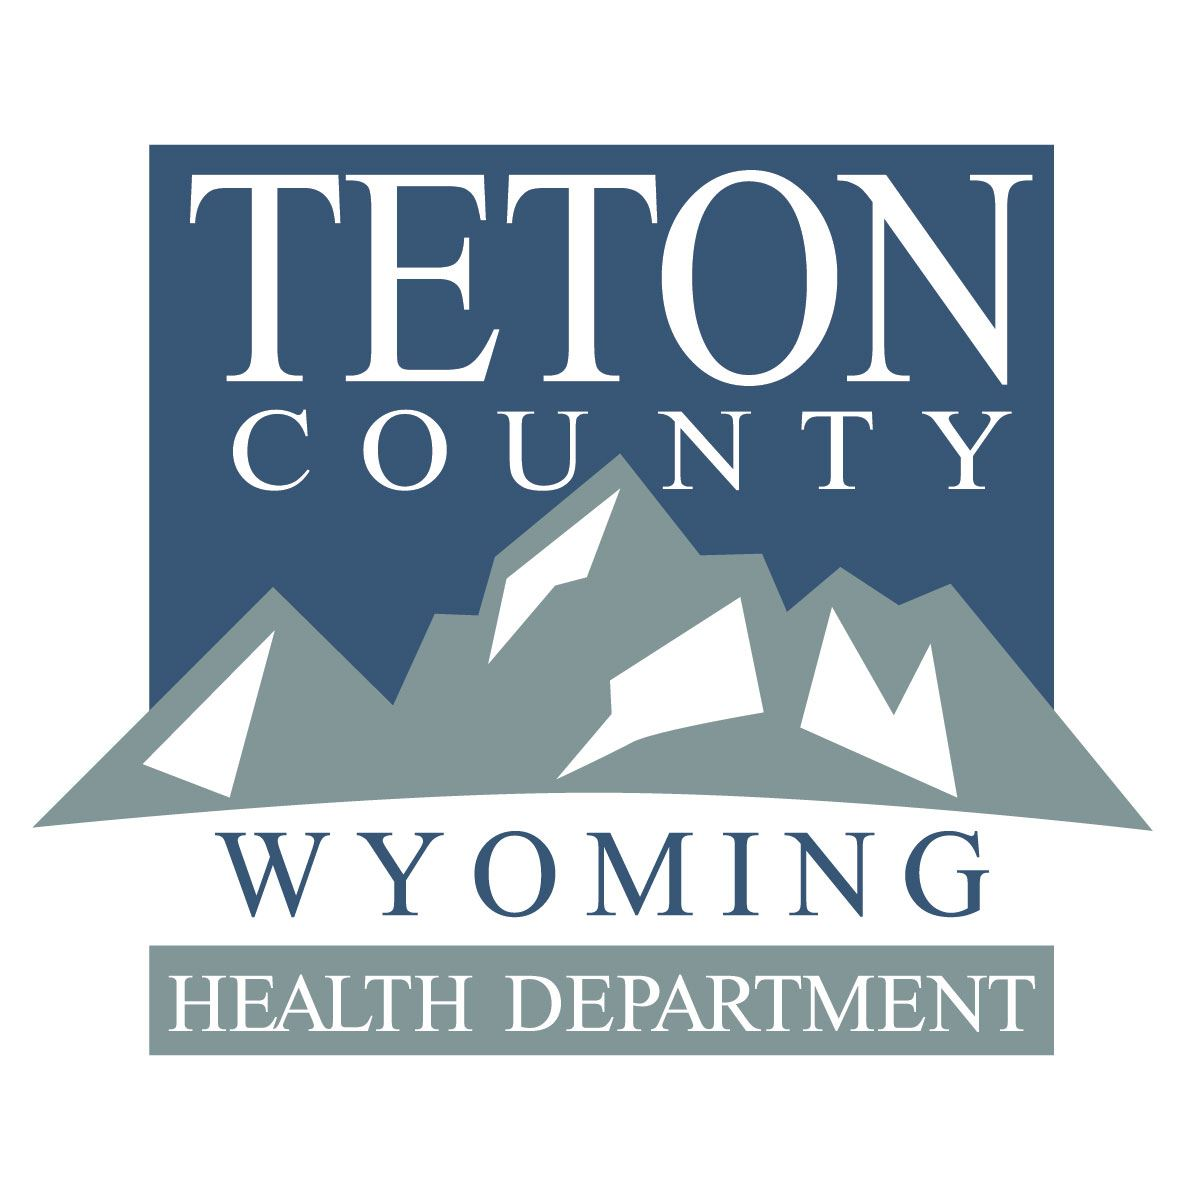 Health Department Teton County Wy